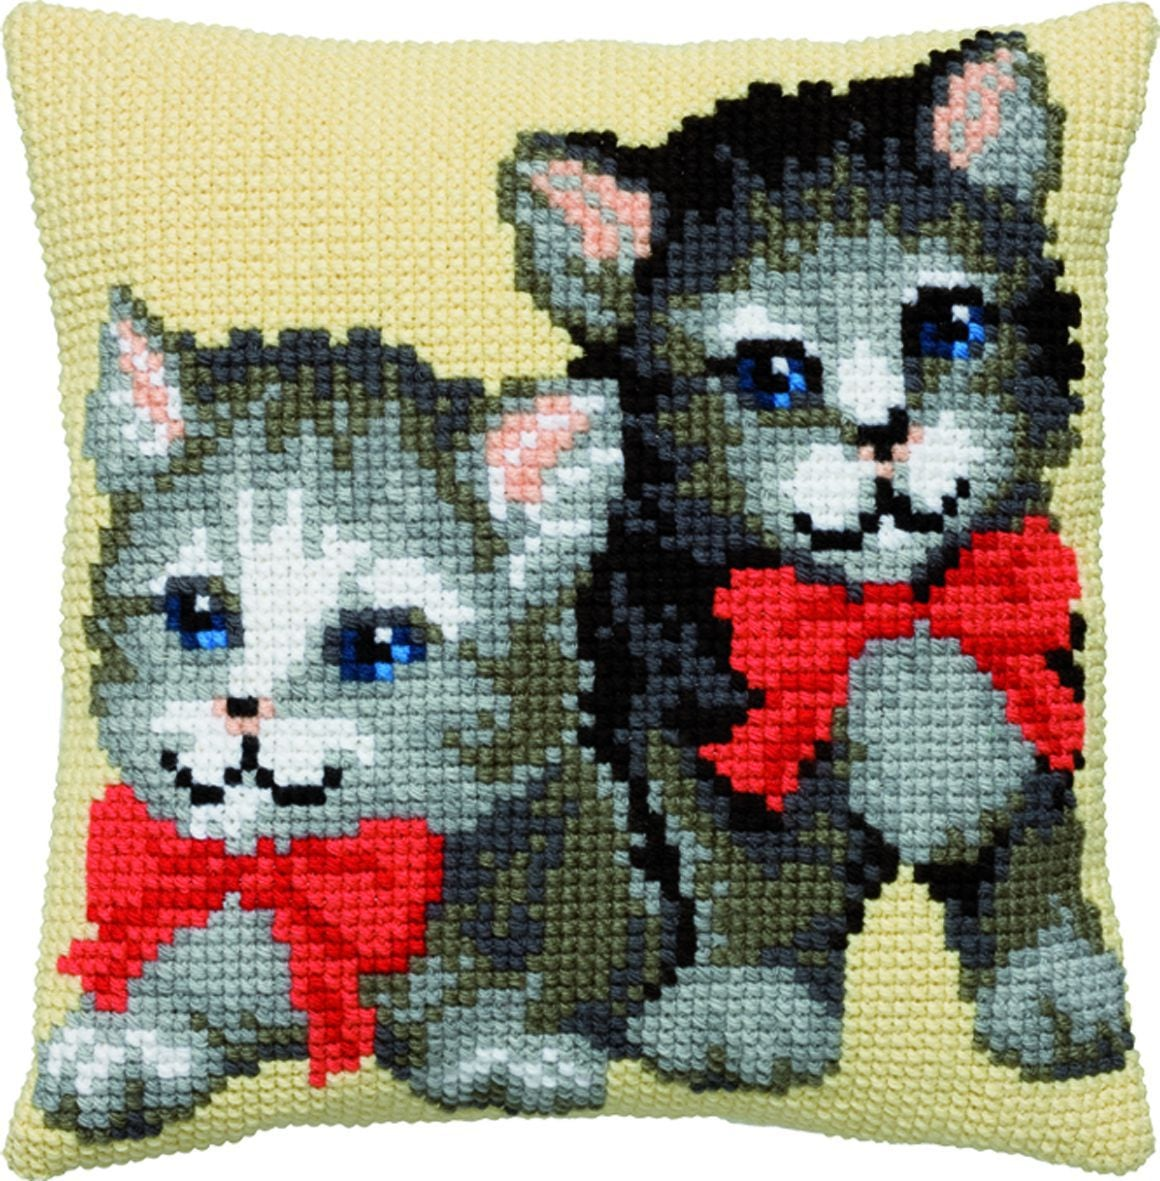 cross stitch cushion two little kitten printed